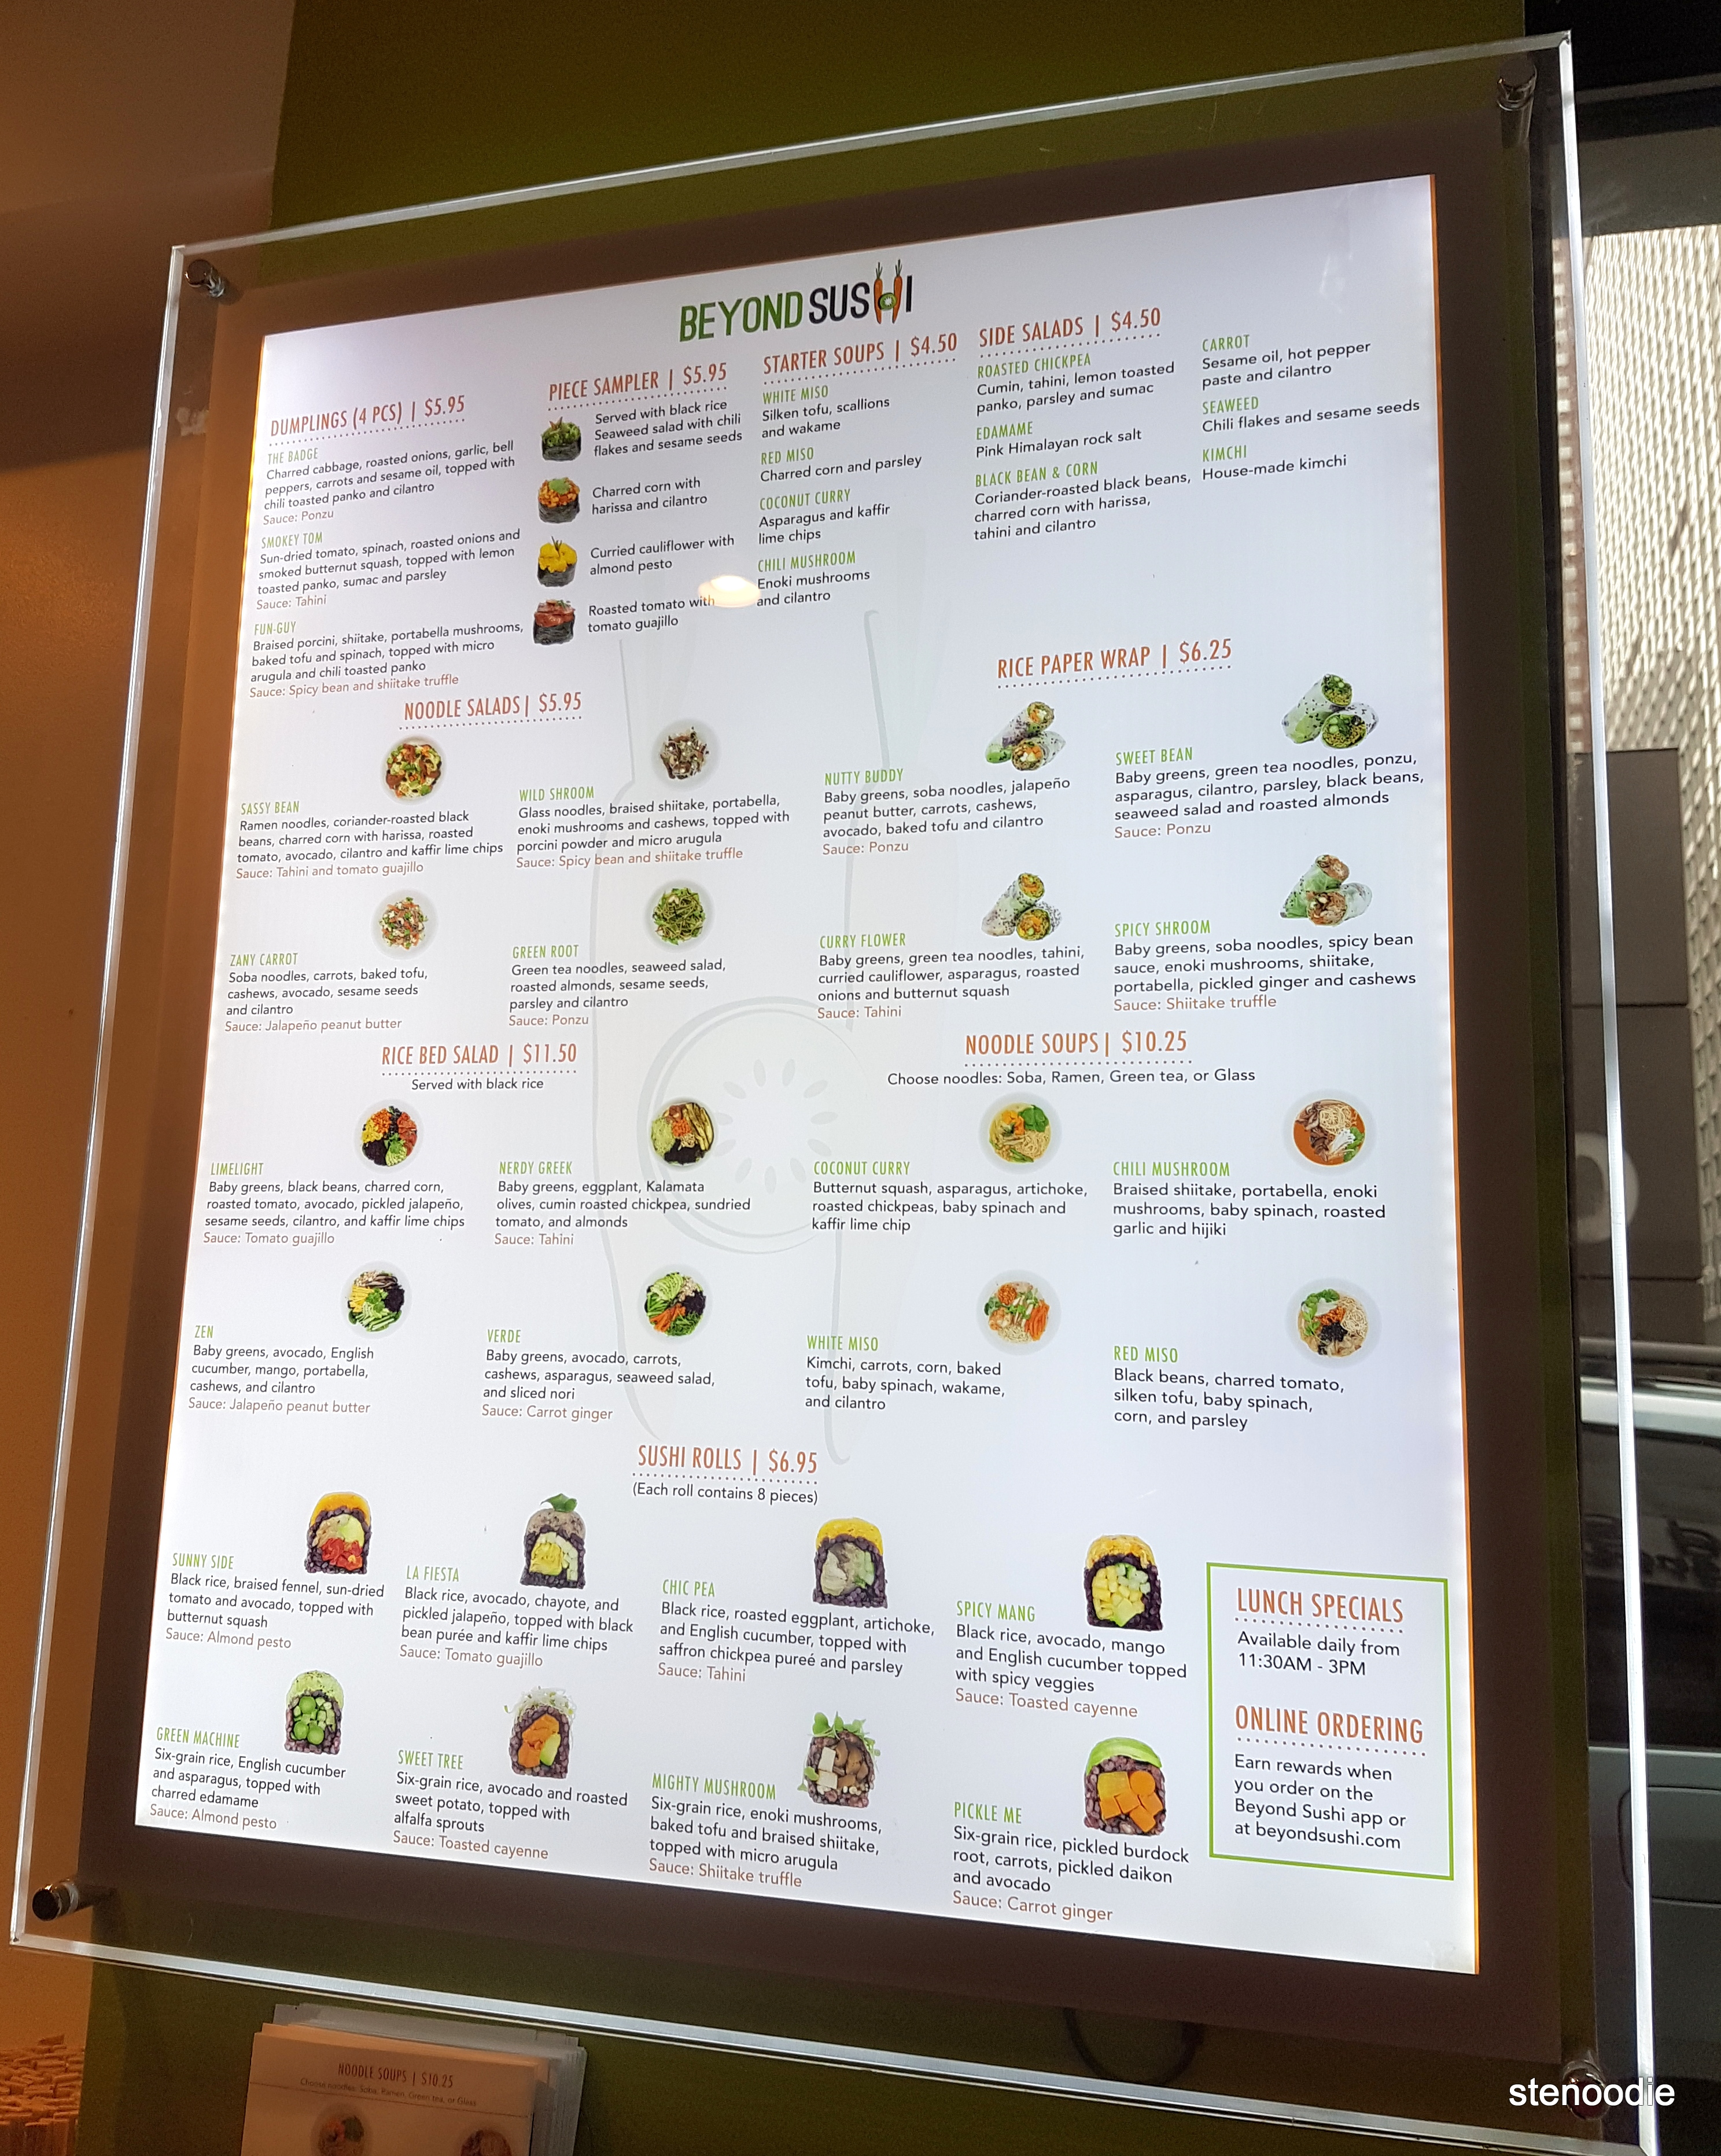 Beyond Sushi menu and prices